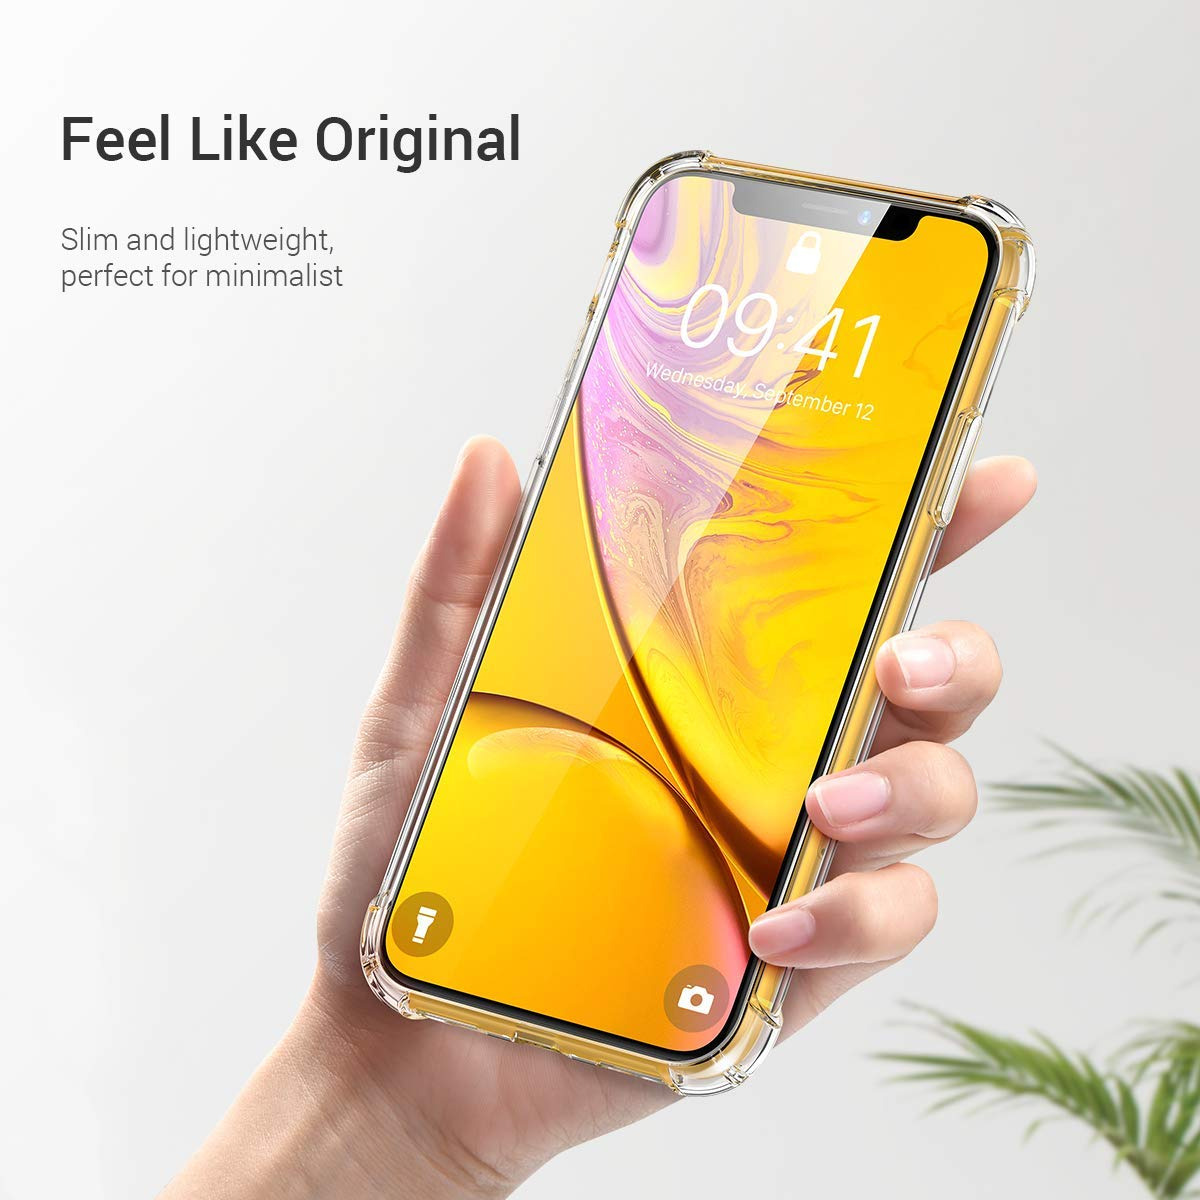 Crystal Clear Shock Absorption with 4 Corners Protection Ainope iPhone XR Case Compatible, Protective Cover with Soft Scratch-Resistant TPU Compatible iPhone XR 6.1 inch 2018